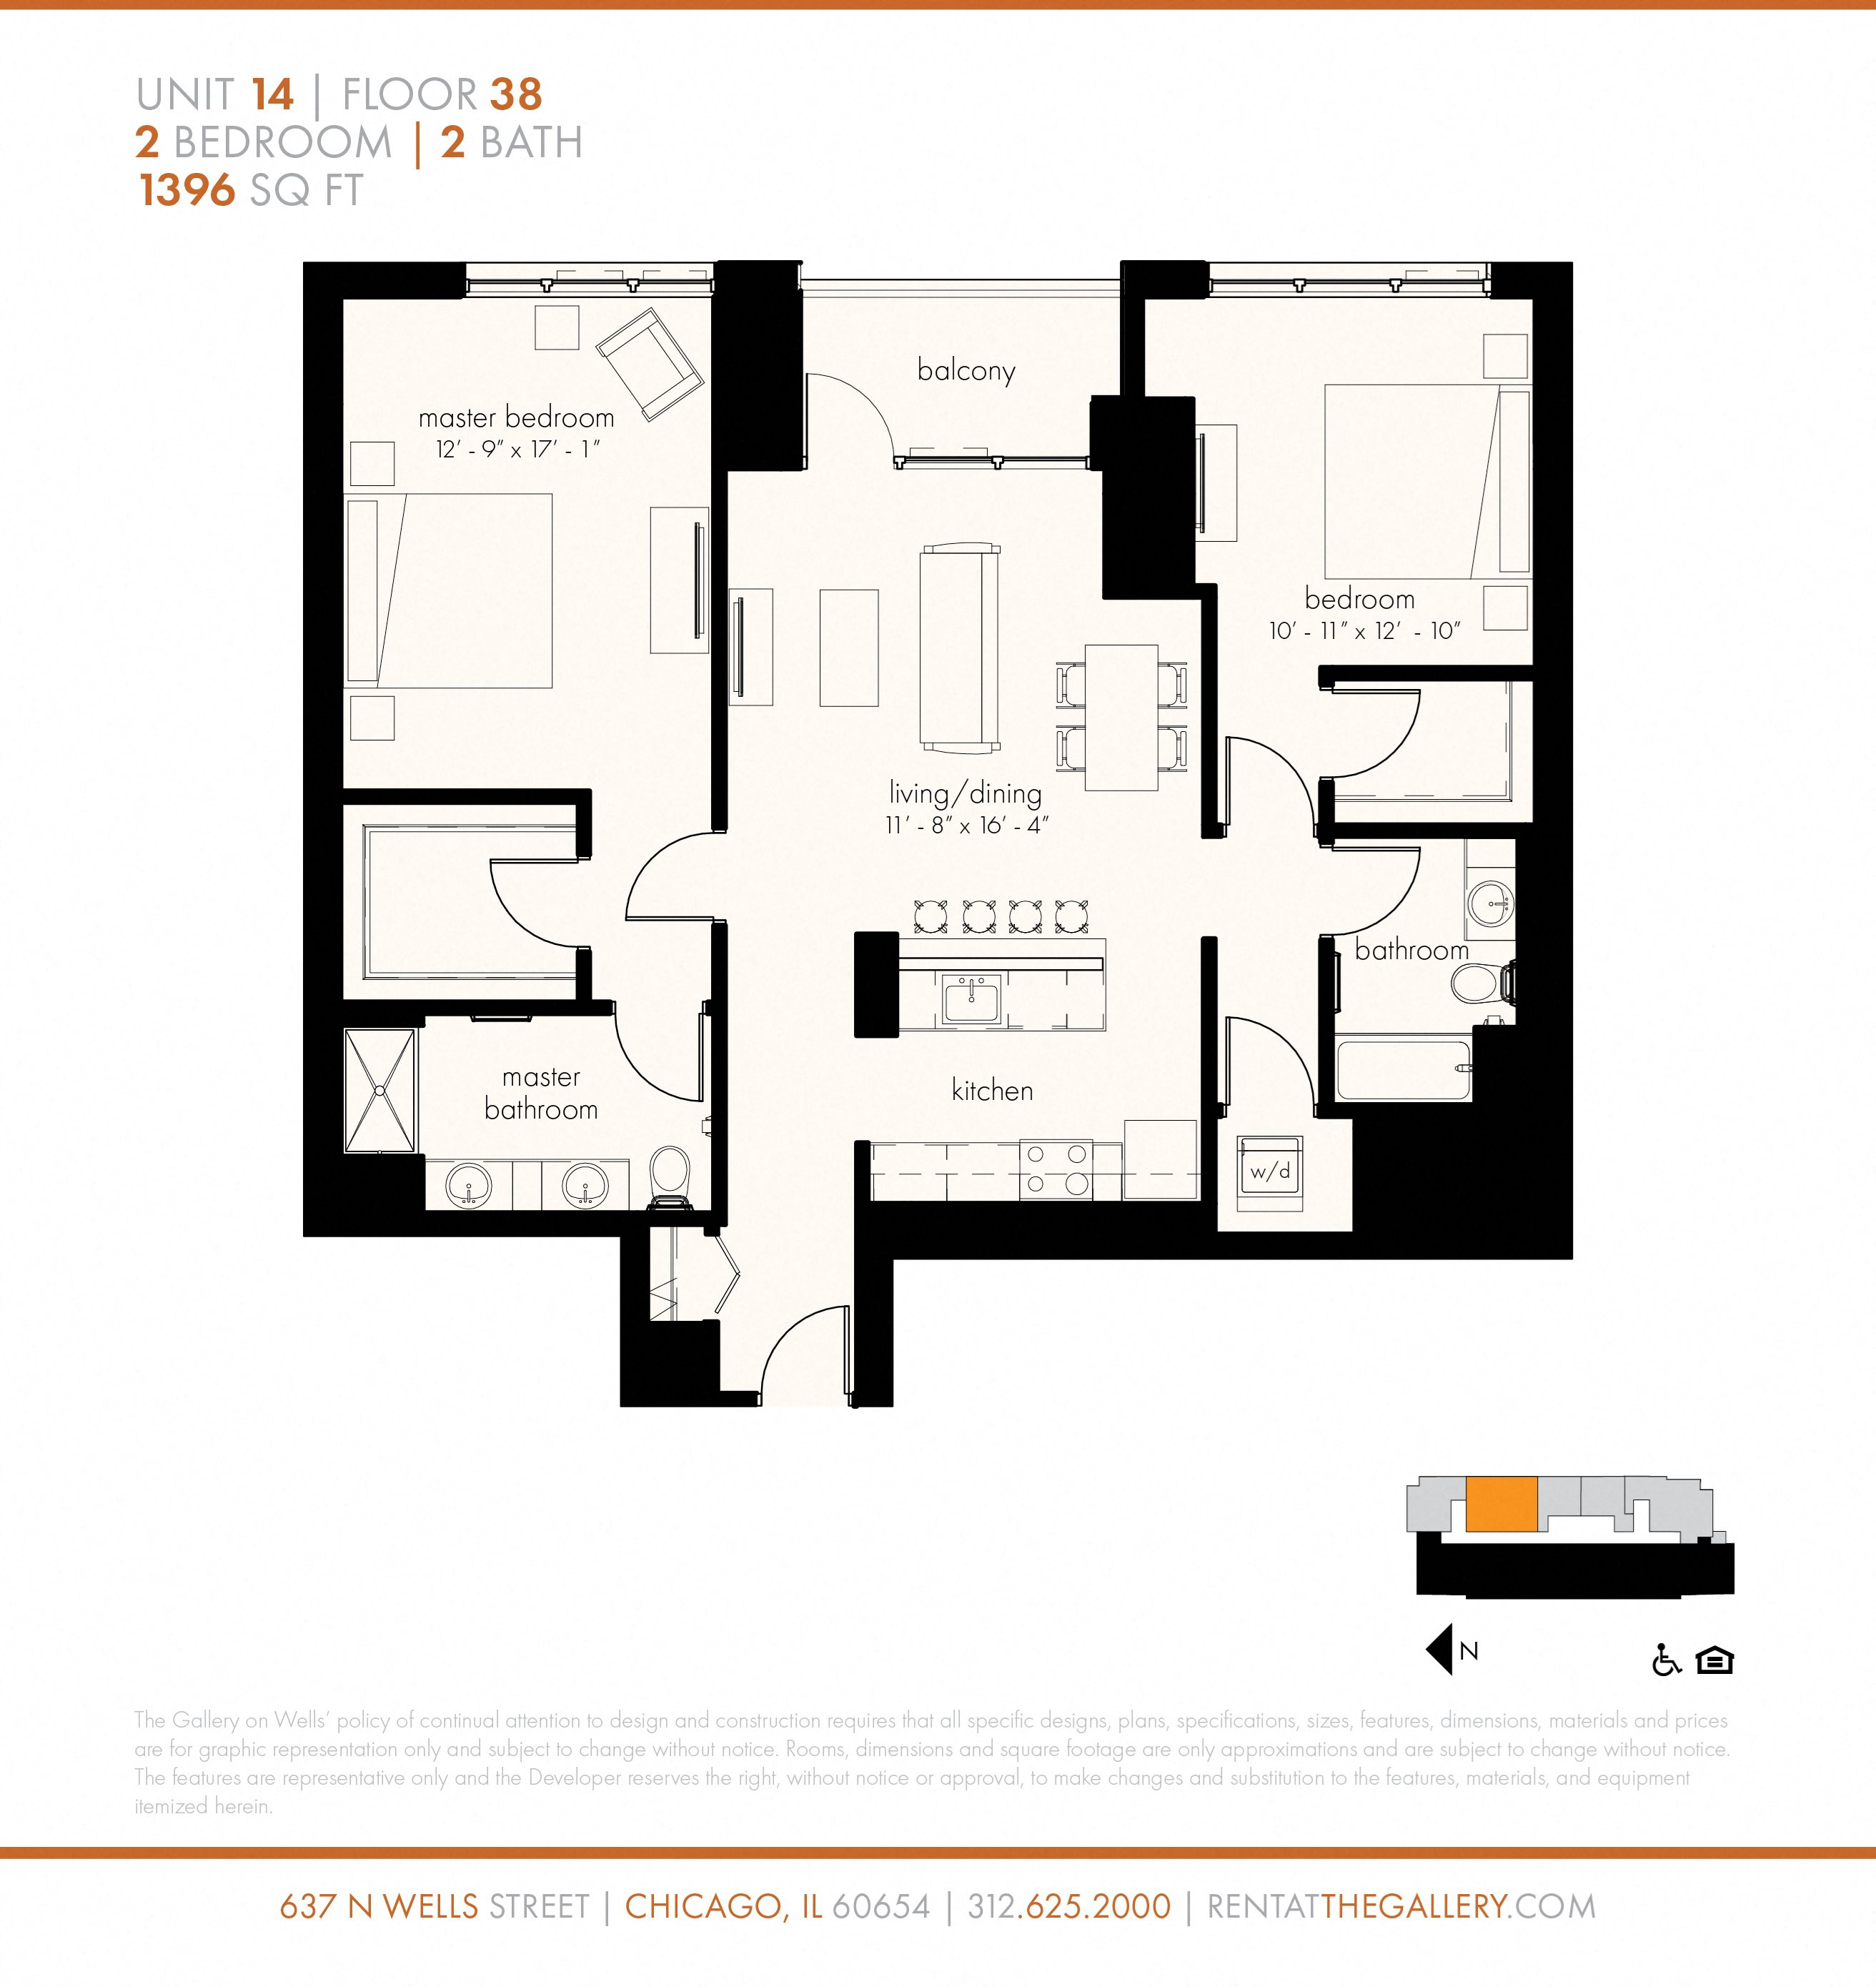 Two Bedroom (1396 sf) Floor Plan 26